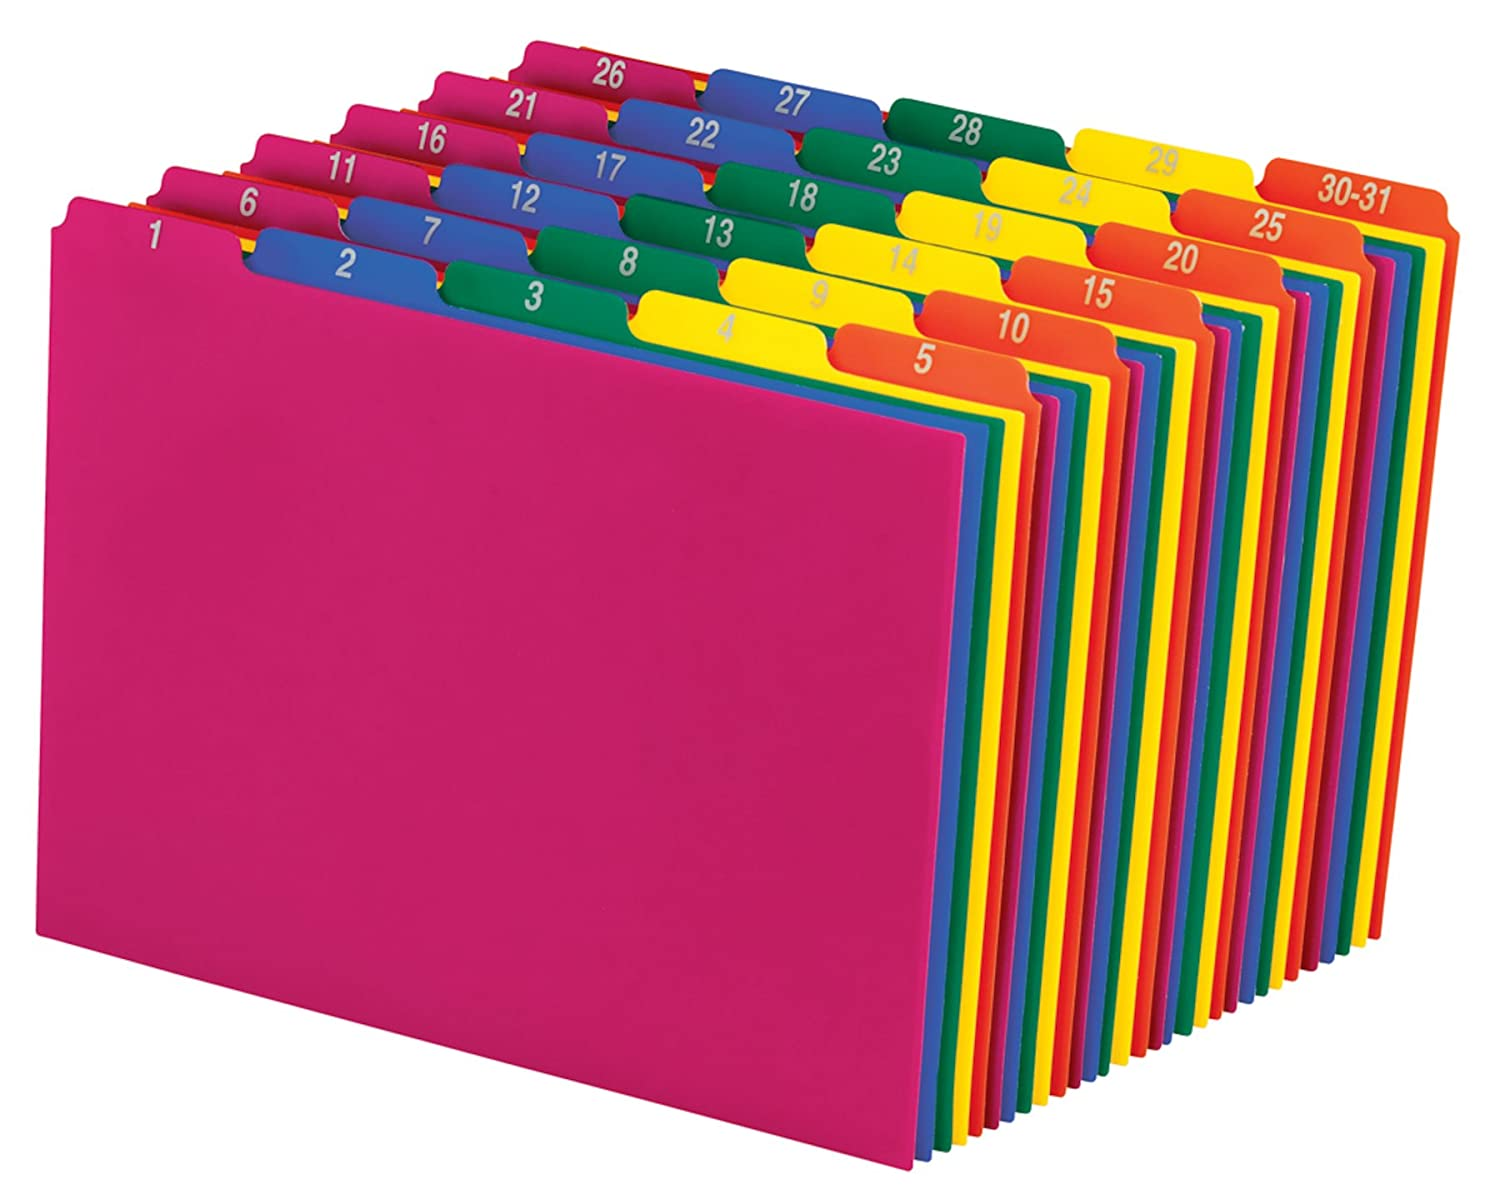 Pendaflex Poly File Guides, 1-31, 1/5 Cut Top Tabs, Letter, Assorted Colors, Daily 1-31,(40143) Esselte Corporation